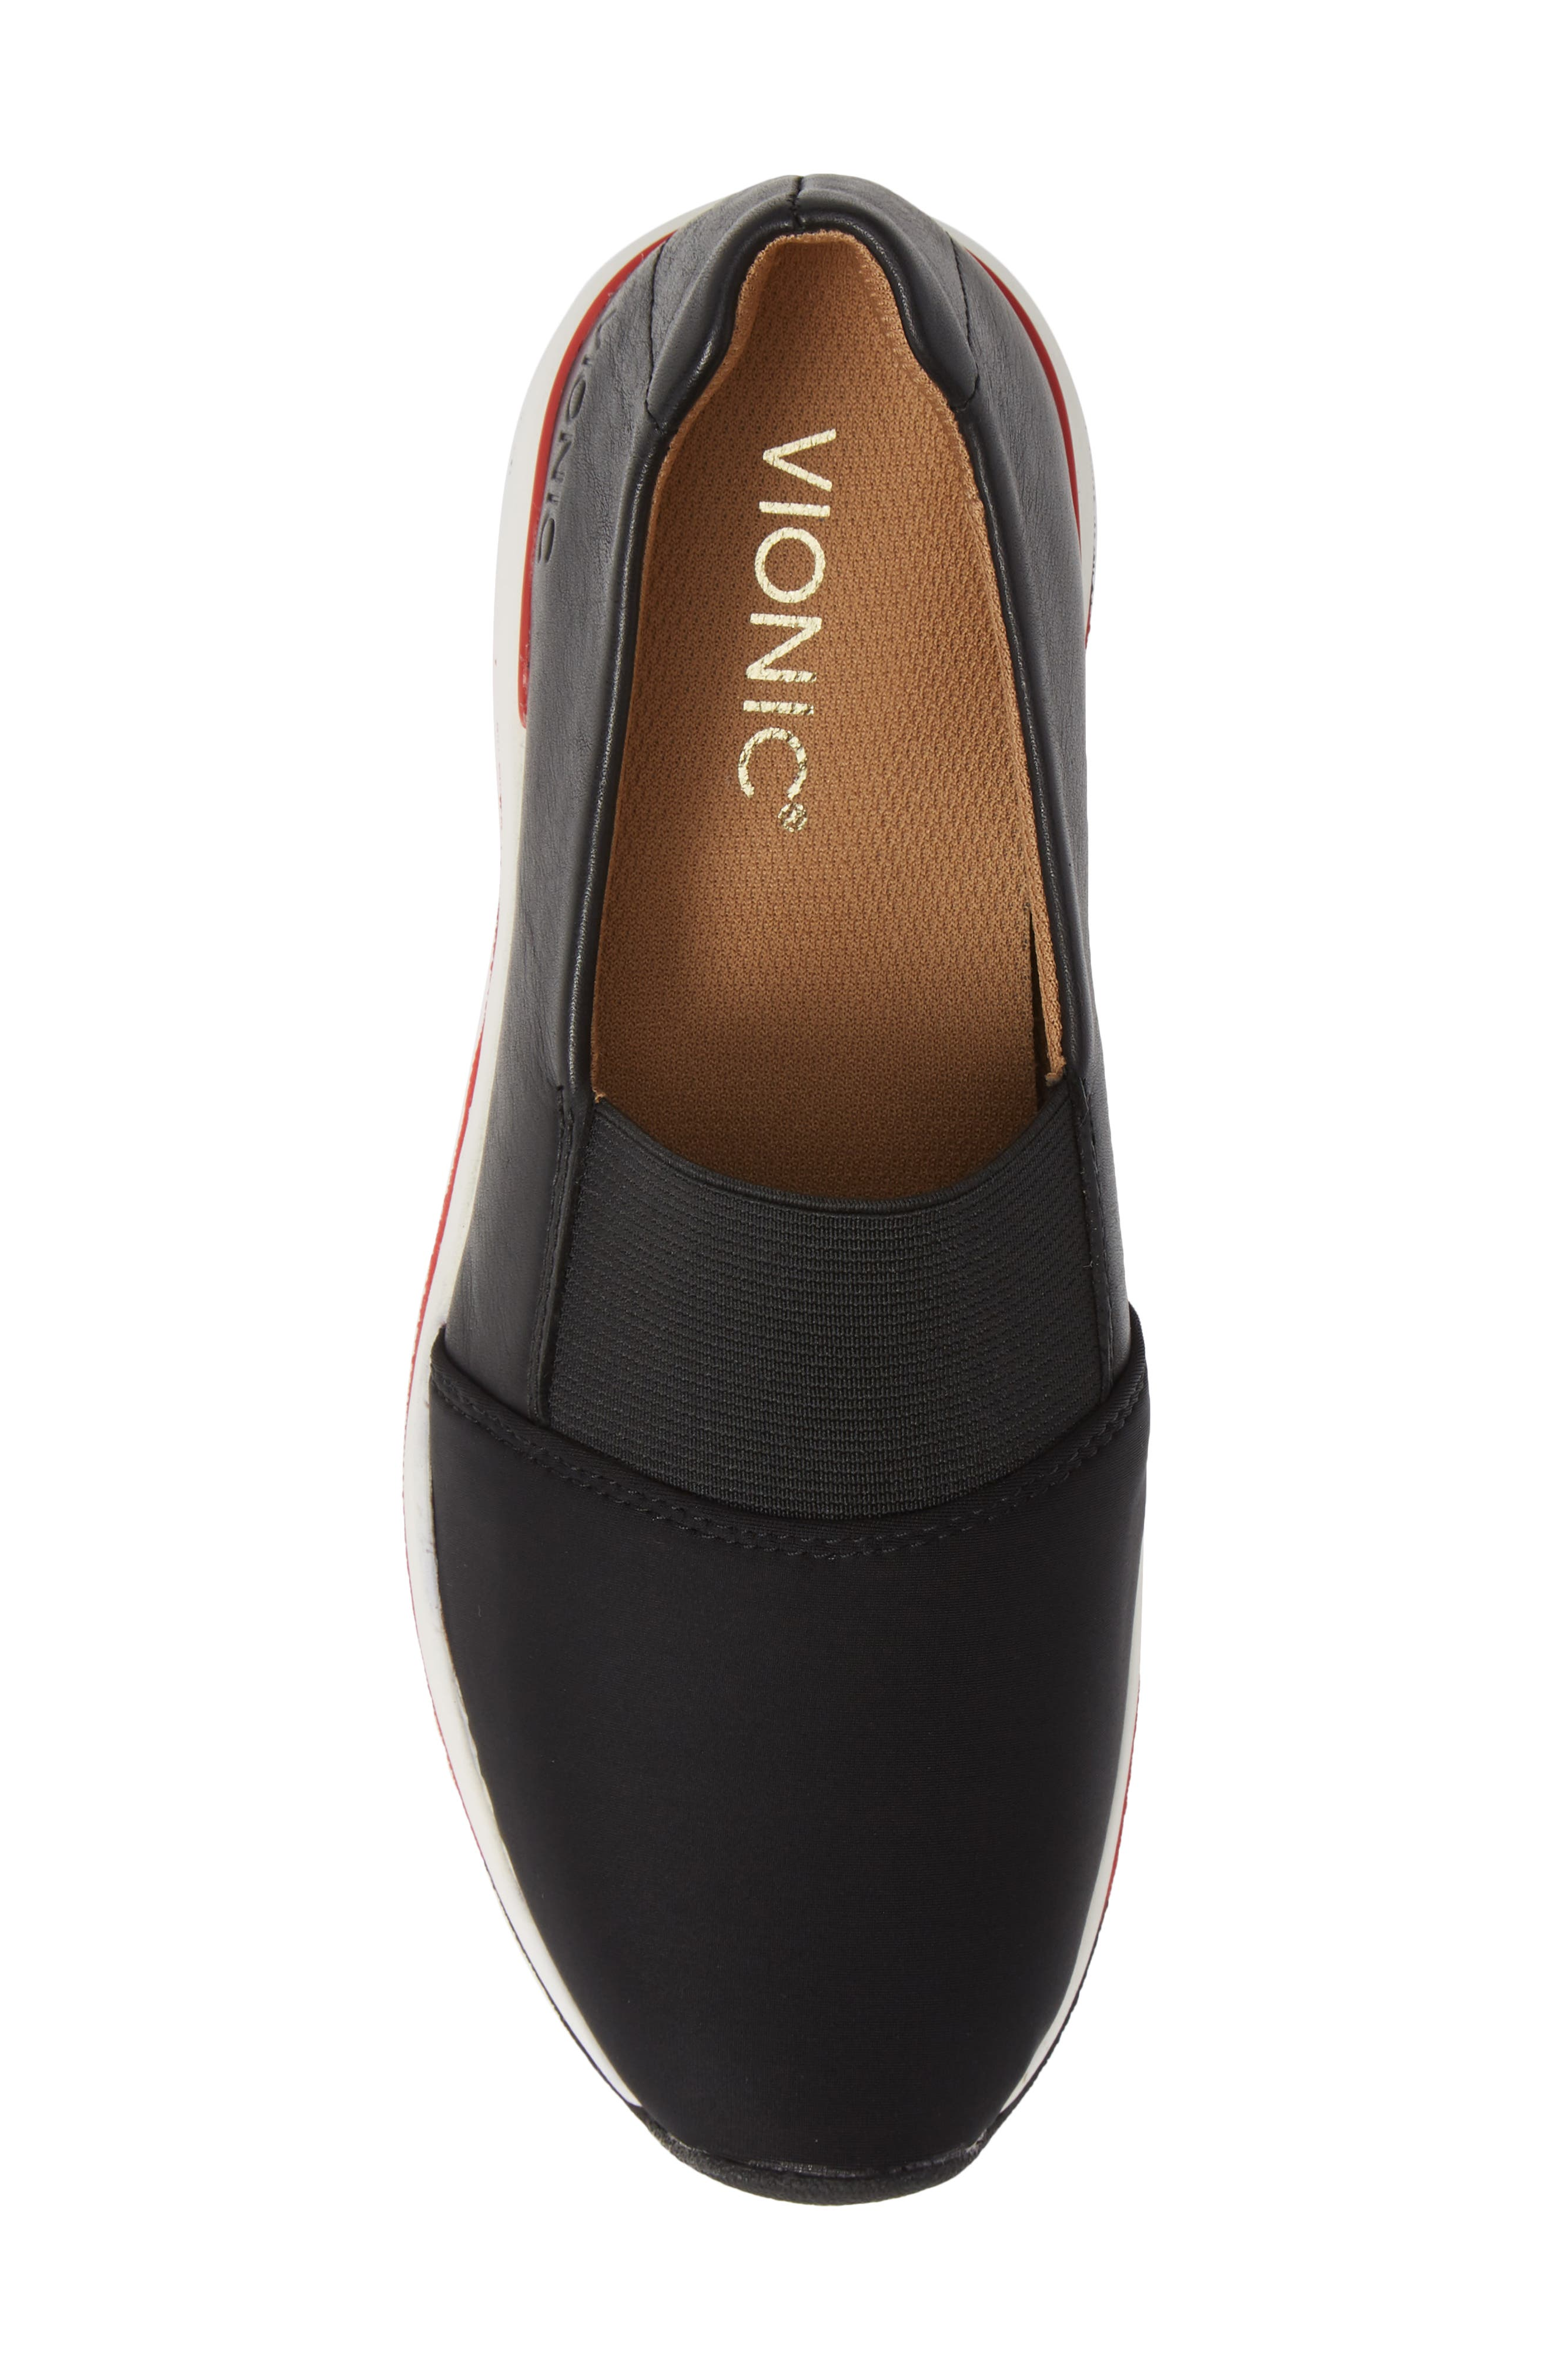 Cameo Slip-On Shoe,                             Alternate thumbnail 5, color,                             BLACK LEATHER NEOPRENE